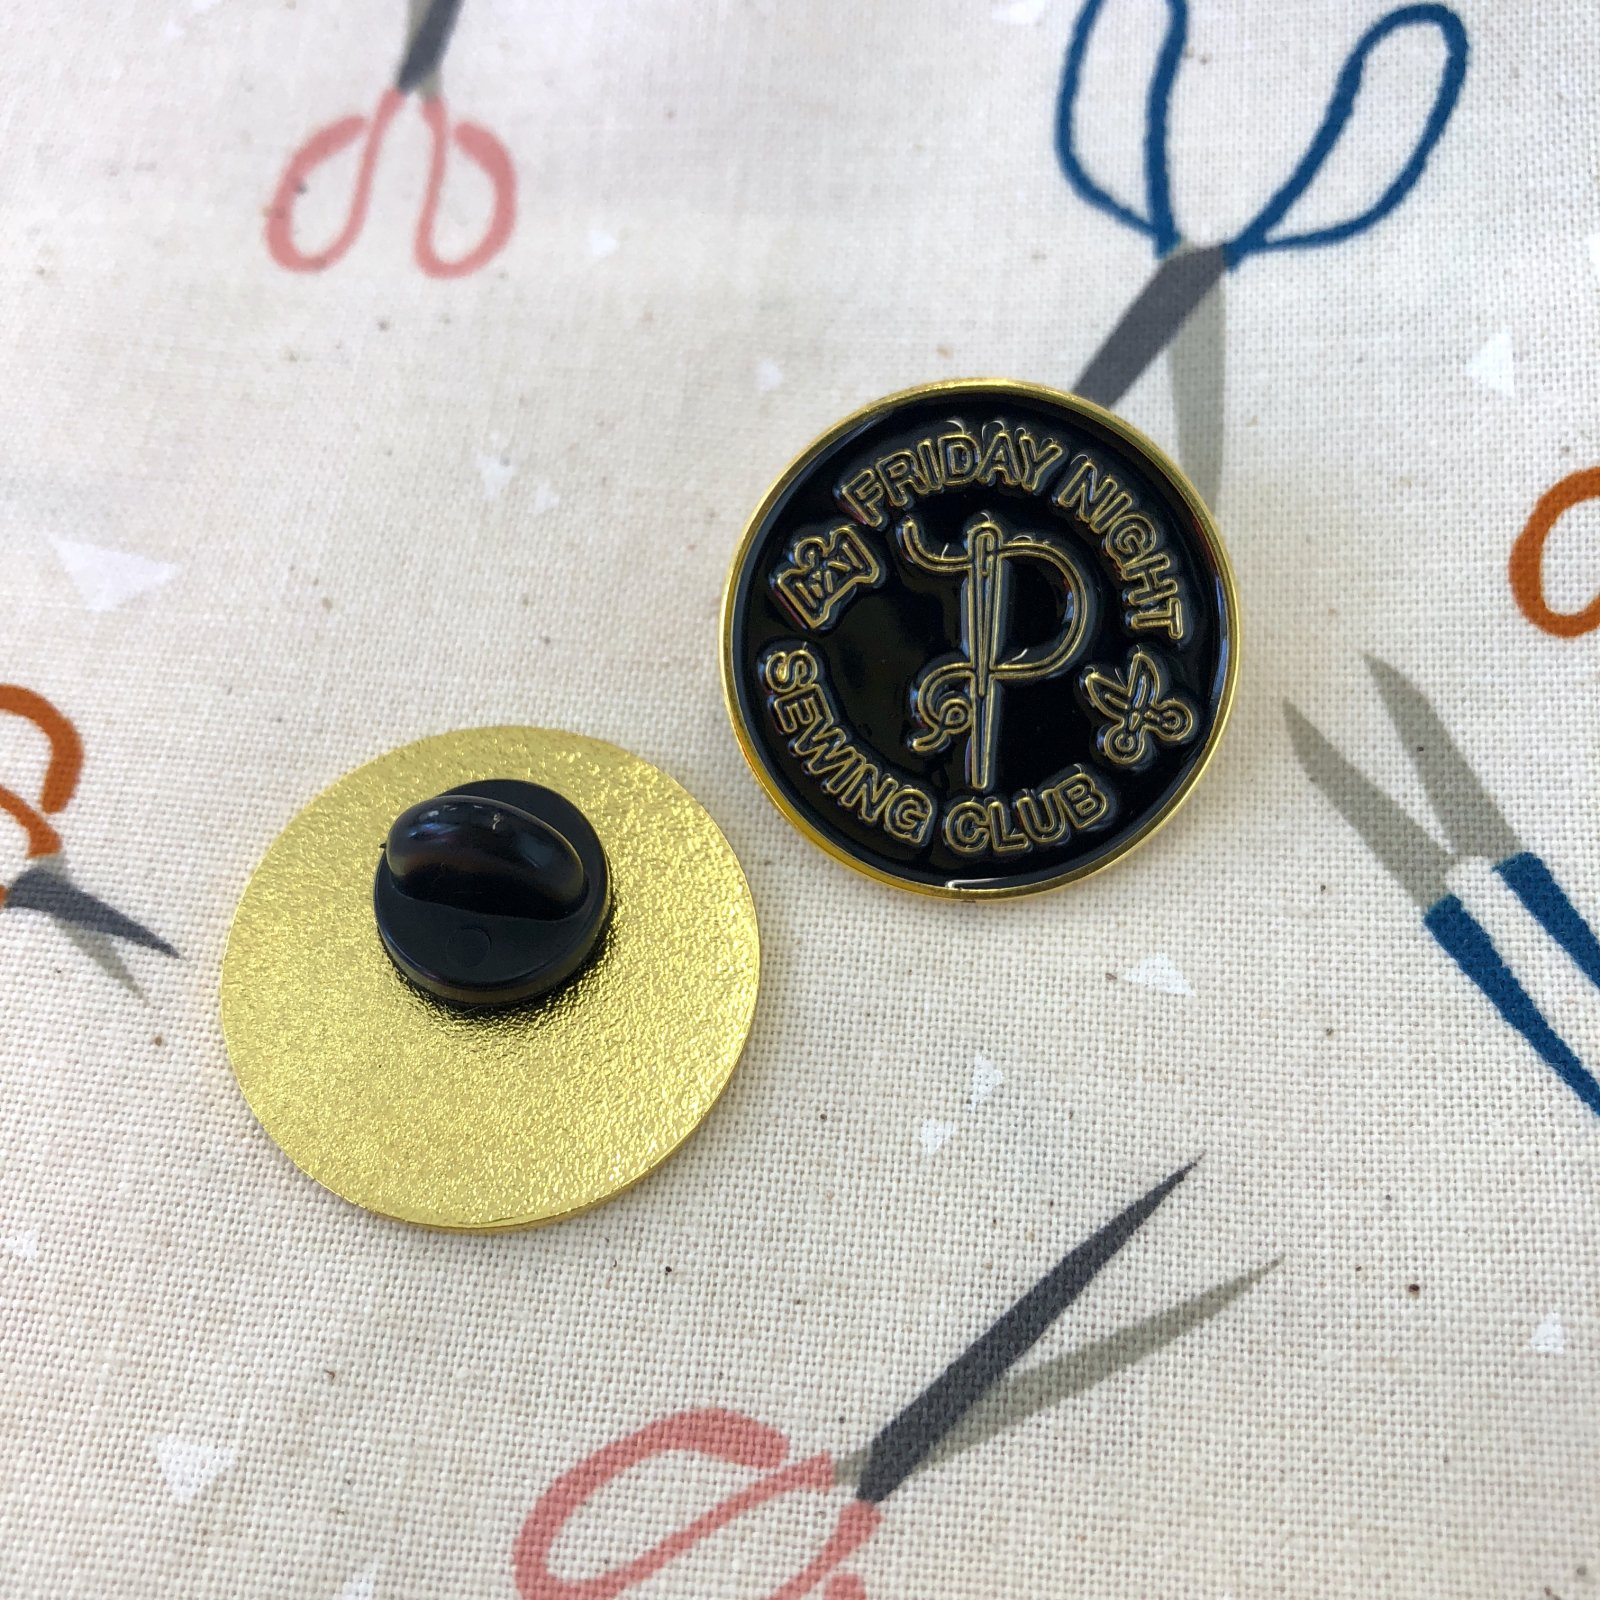 Friday Night Sewing Club Pin